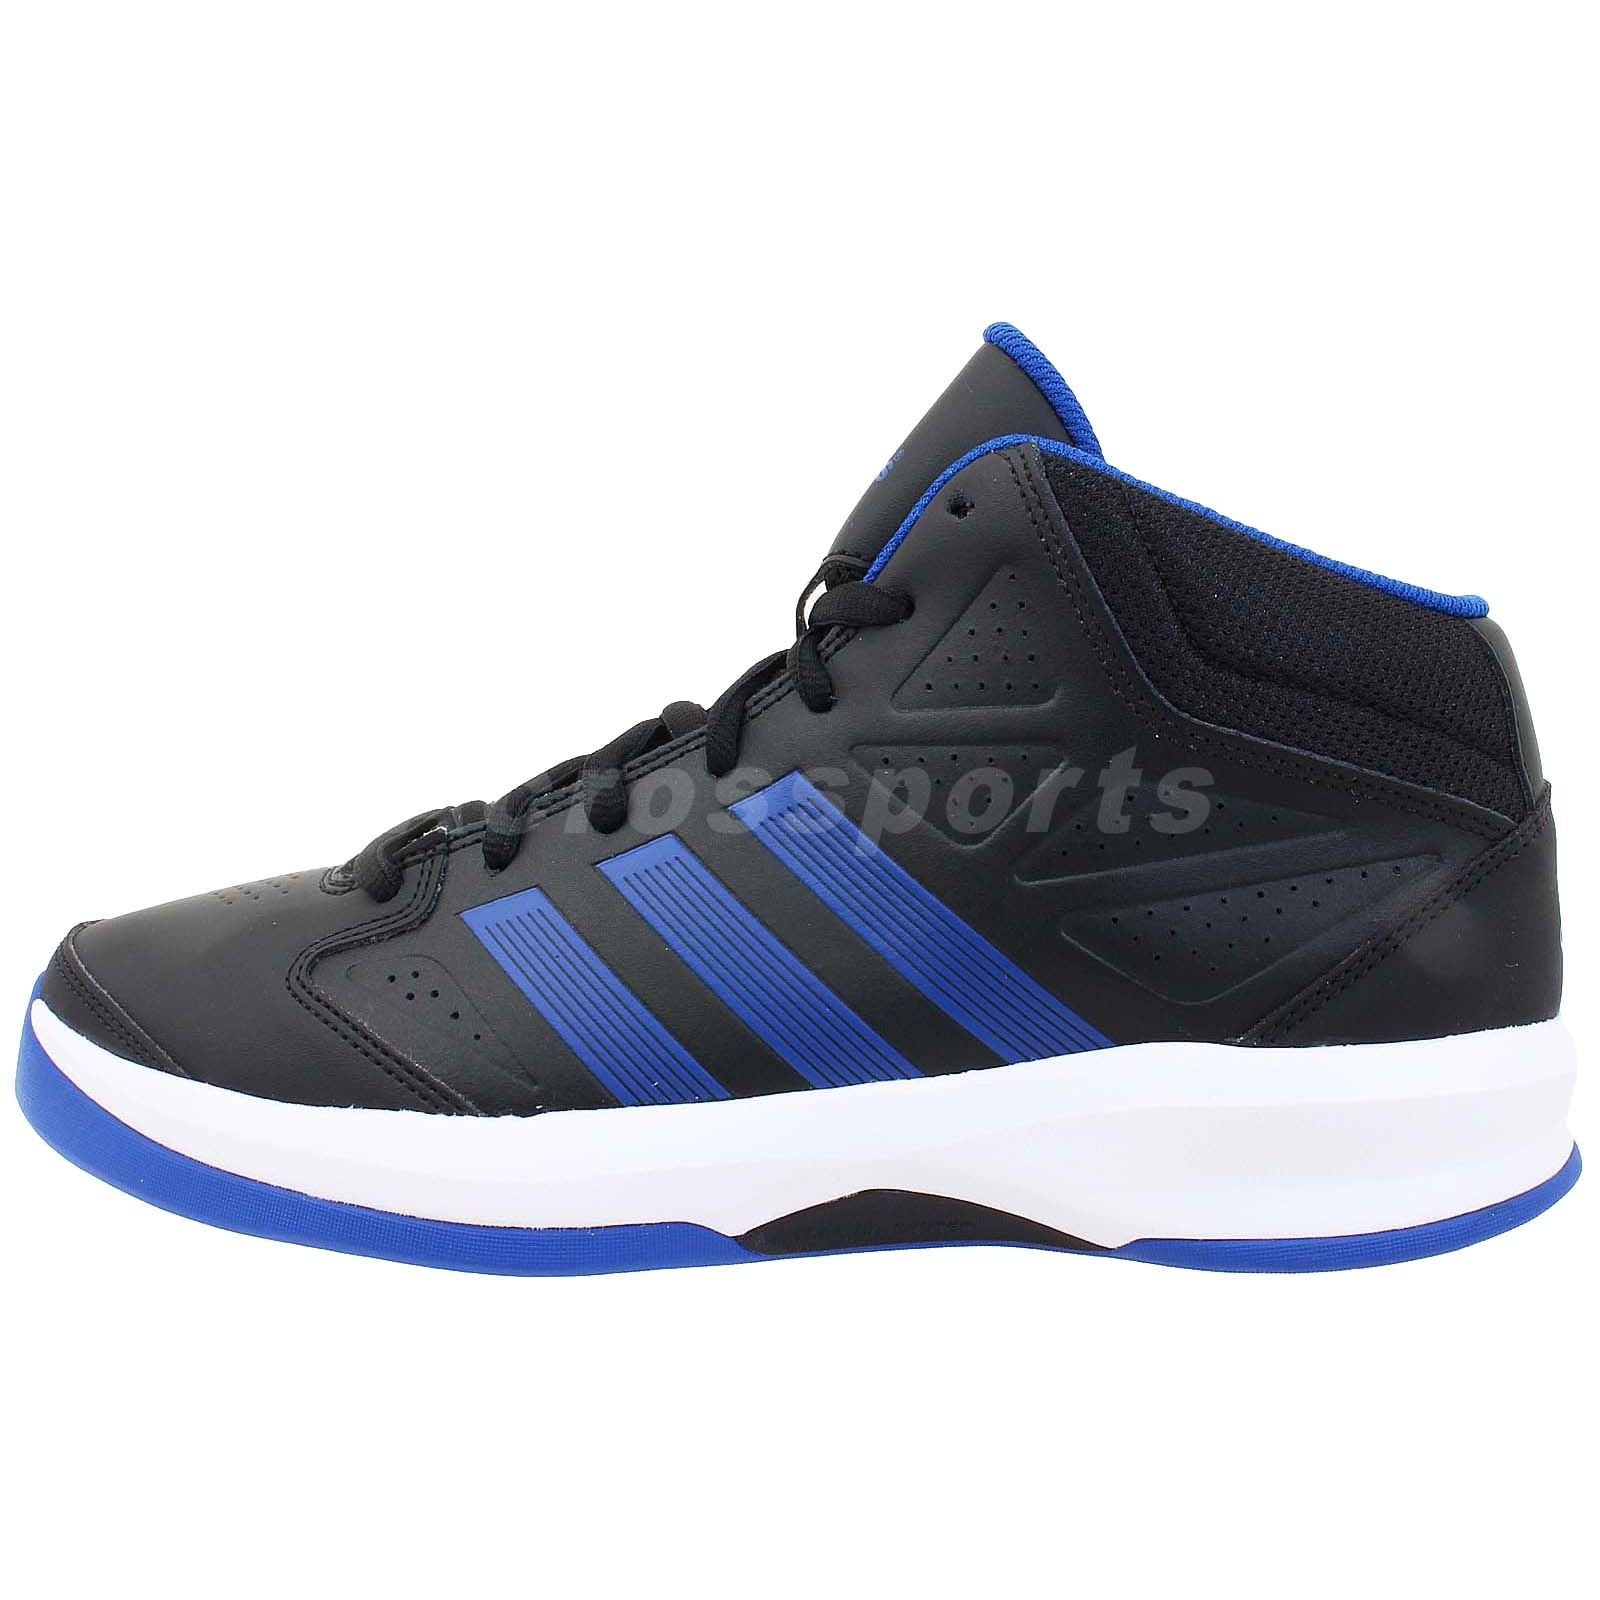 Shoes For Men 2013 Adidas Adidas Isolatio...